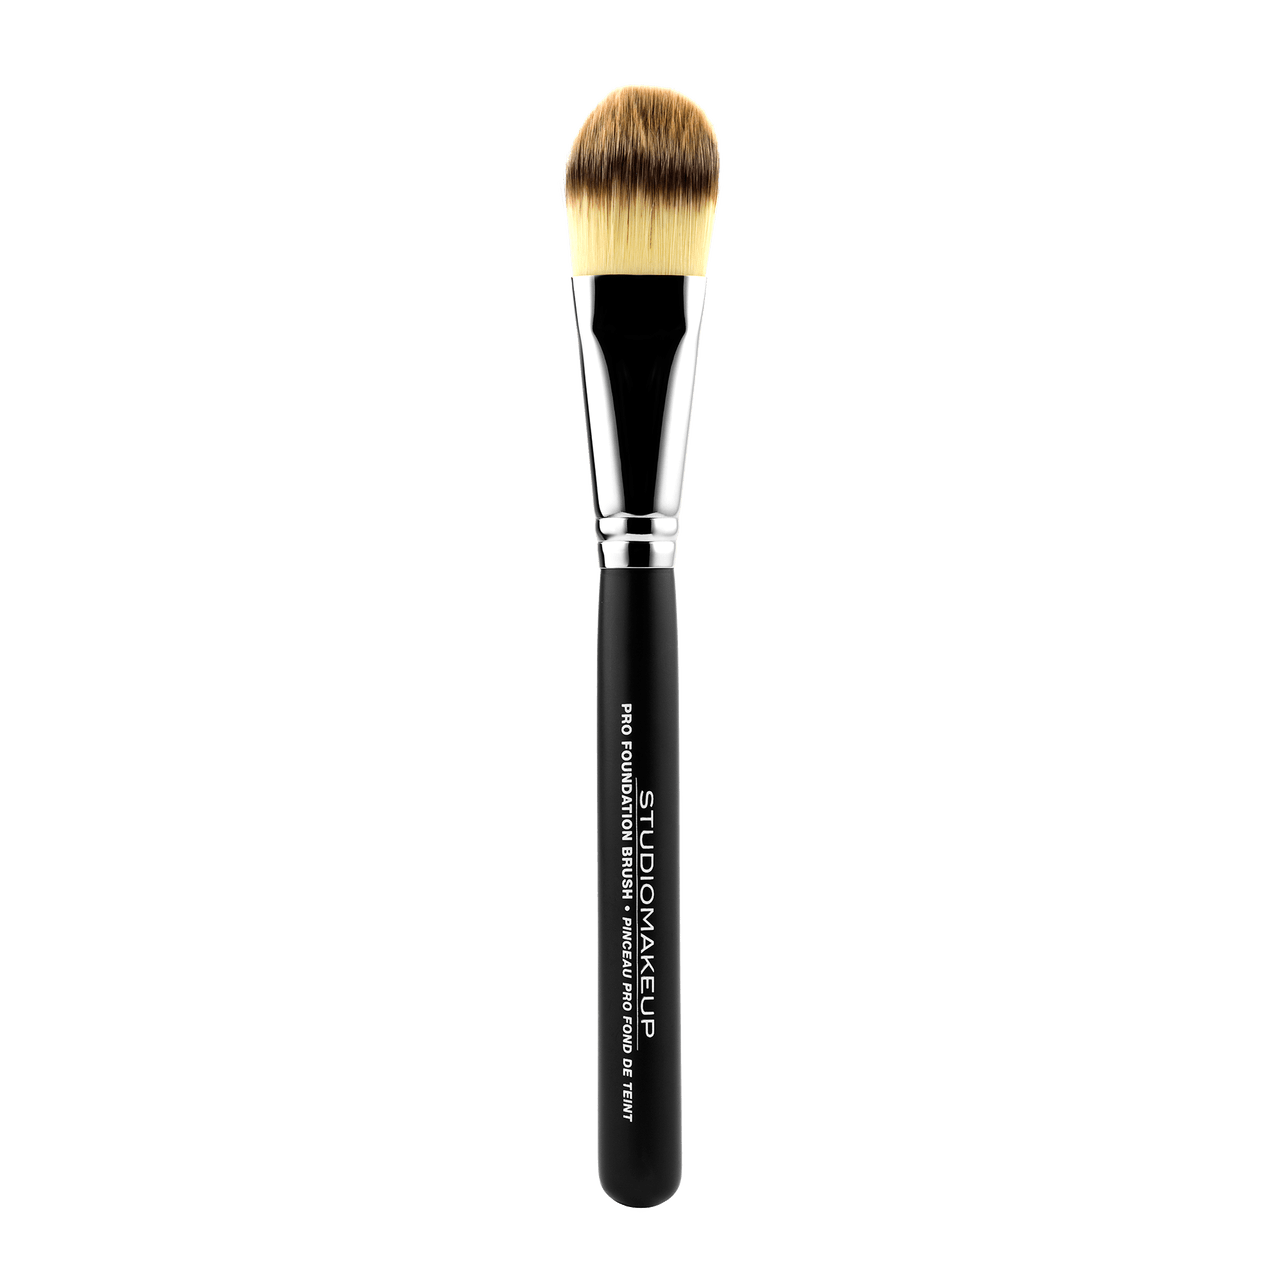 PRO FOUNDATION BRUSH - Studio Make Up US